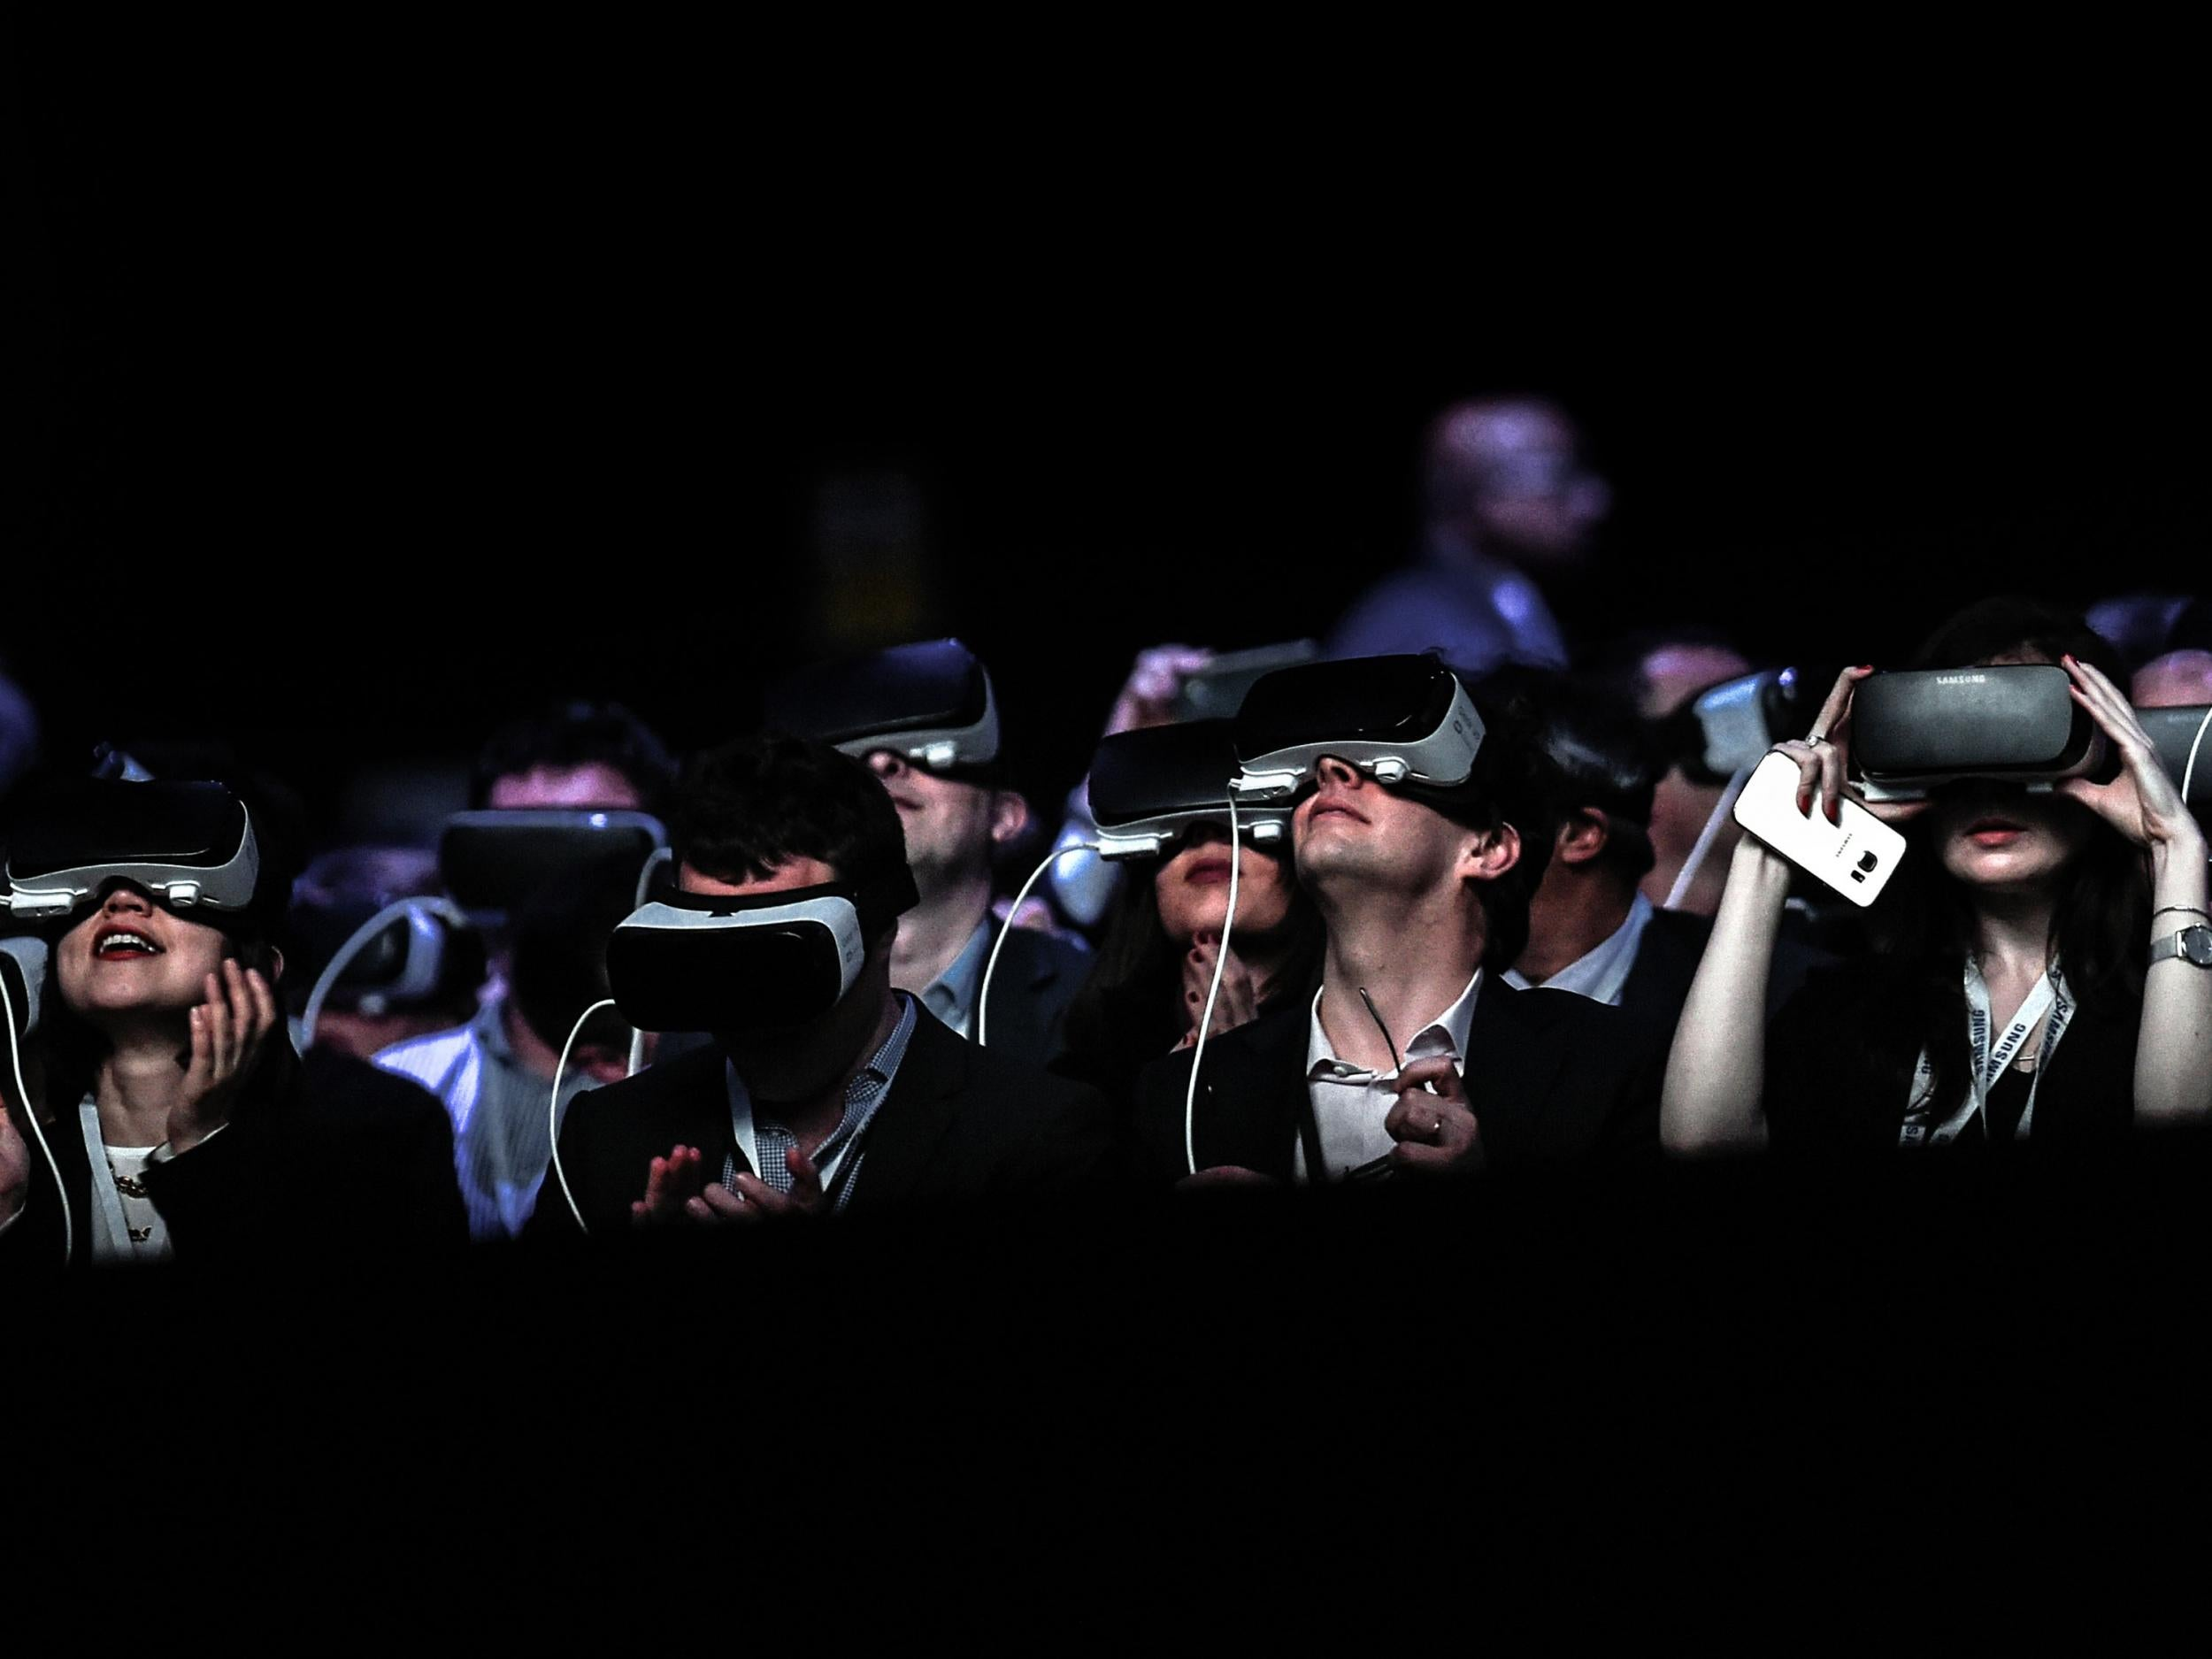 The 'Google of virtual reality' could be just around the corner, senior VR executive says